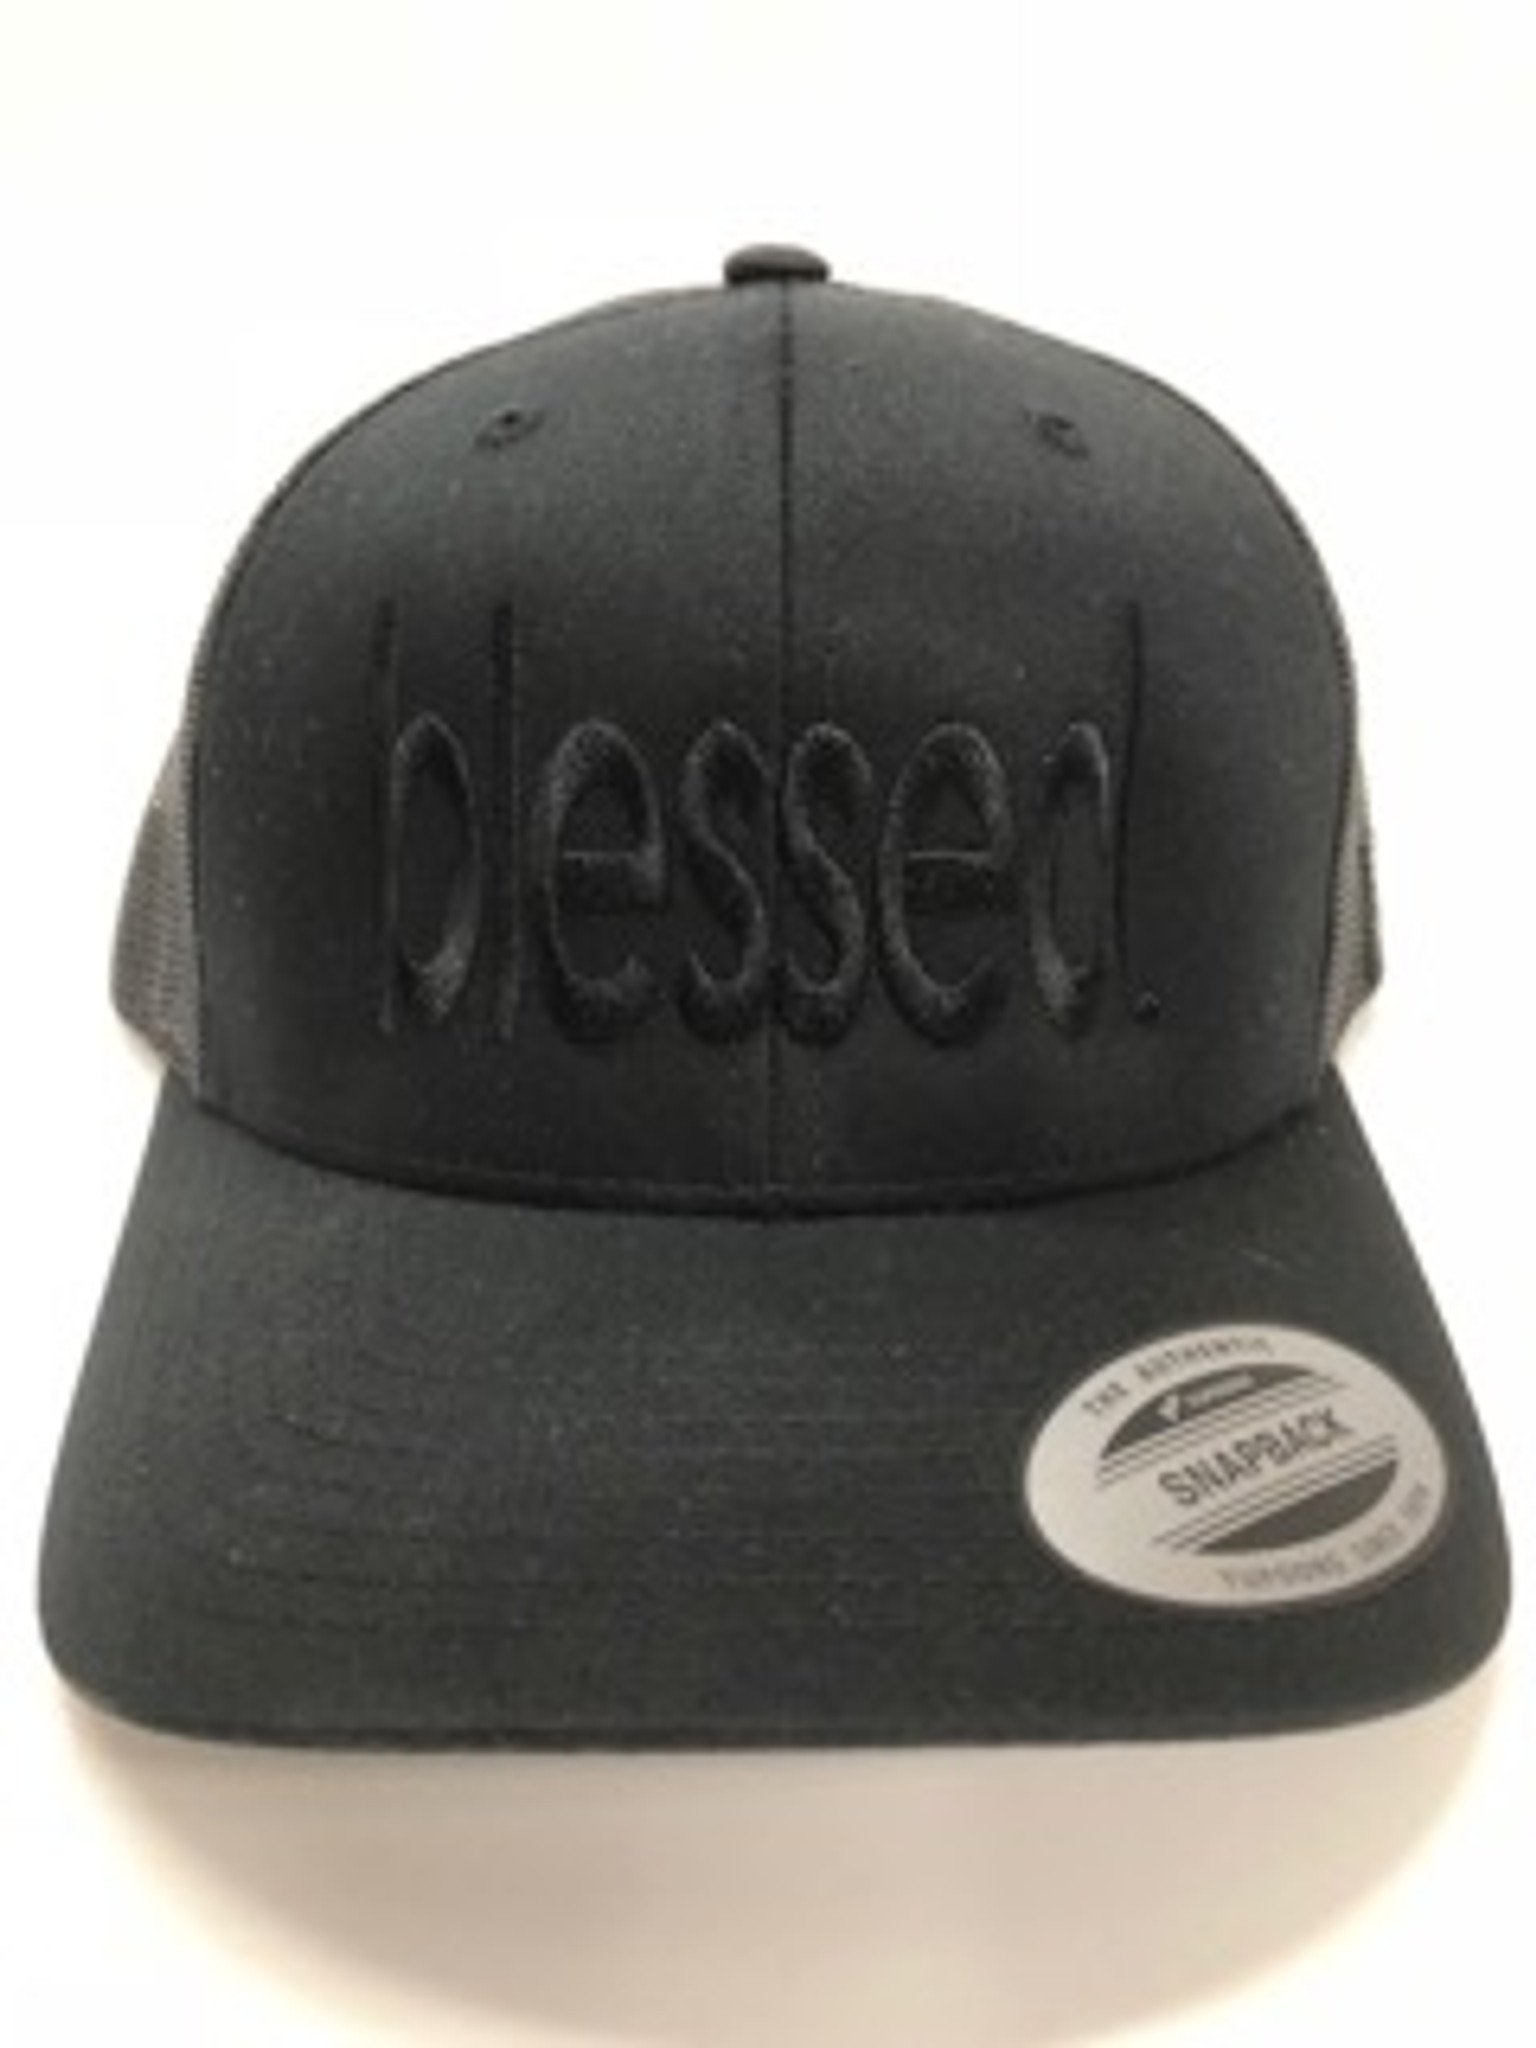 BLESSED. EMBROIDERED TRUCKER HAT BLACK ON BLACK